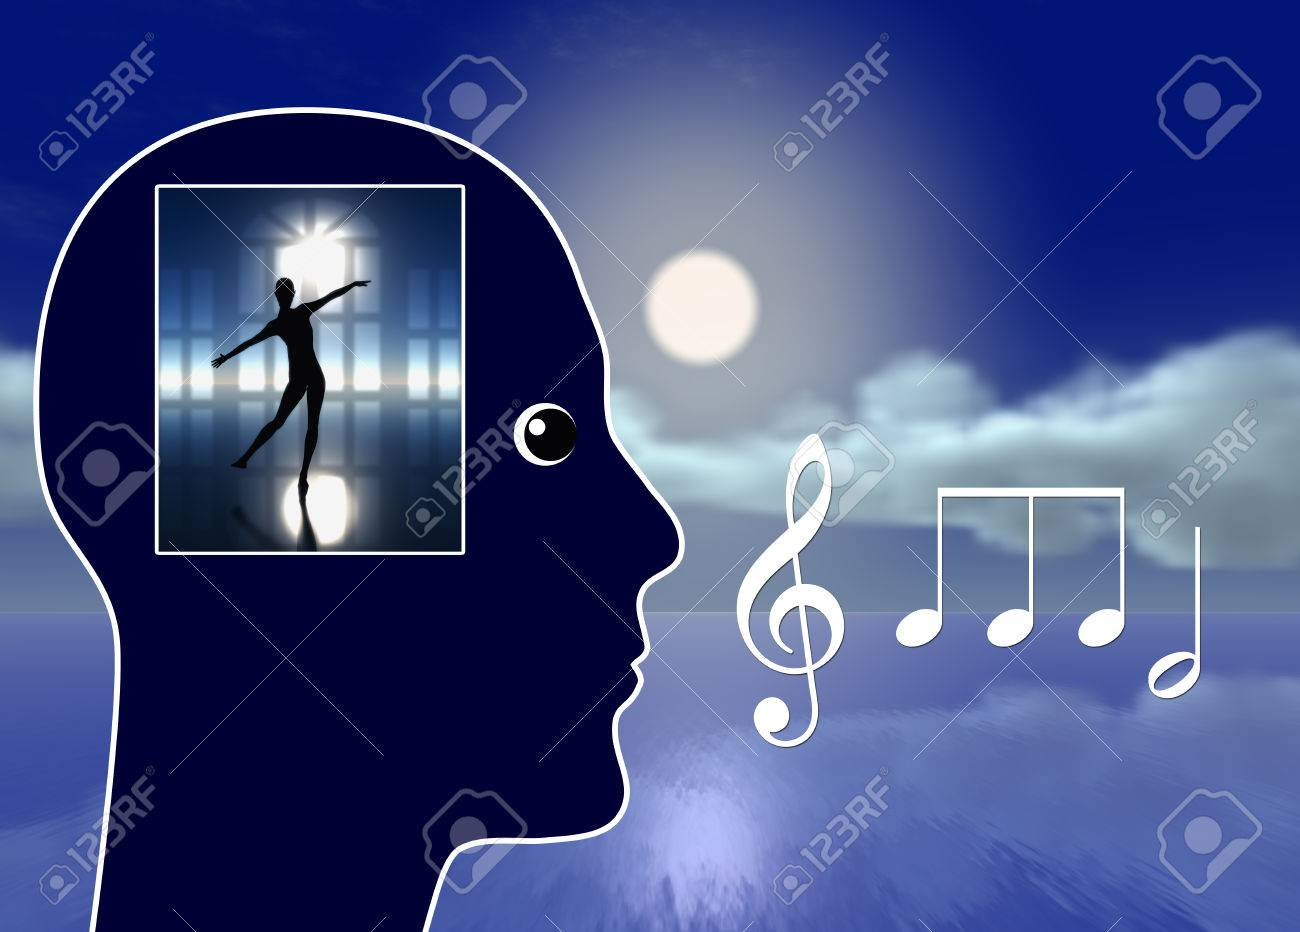 Music Make You Dream  Classical music leading to lucid dreaming,